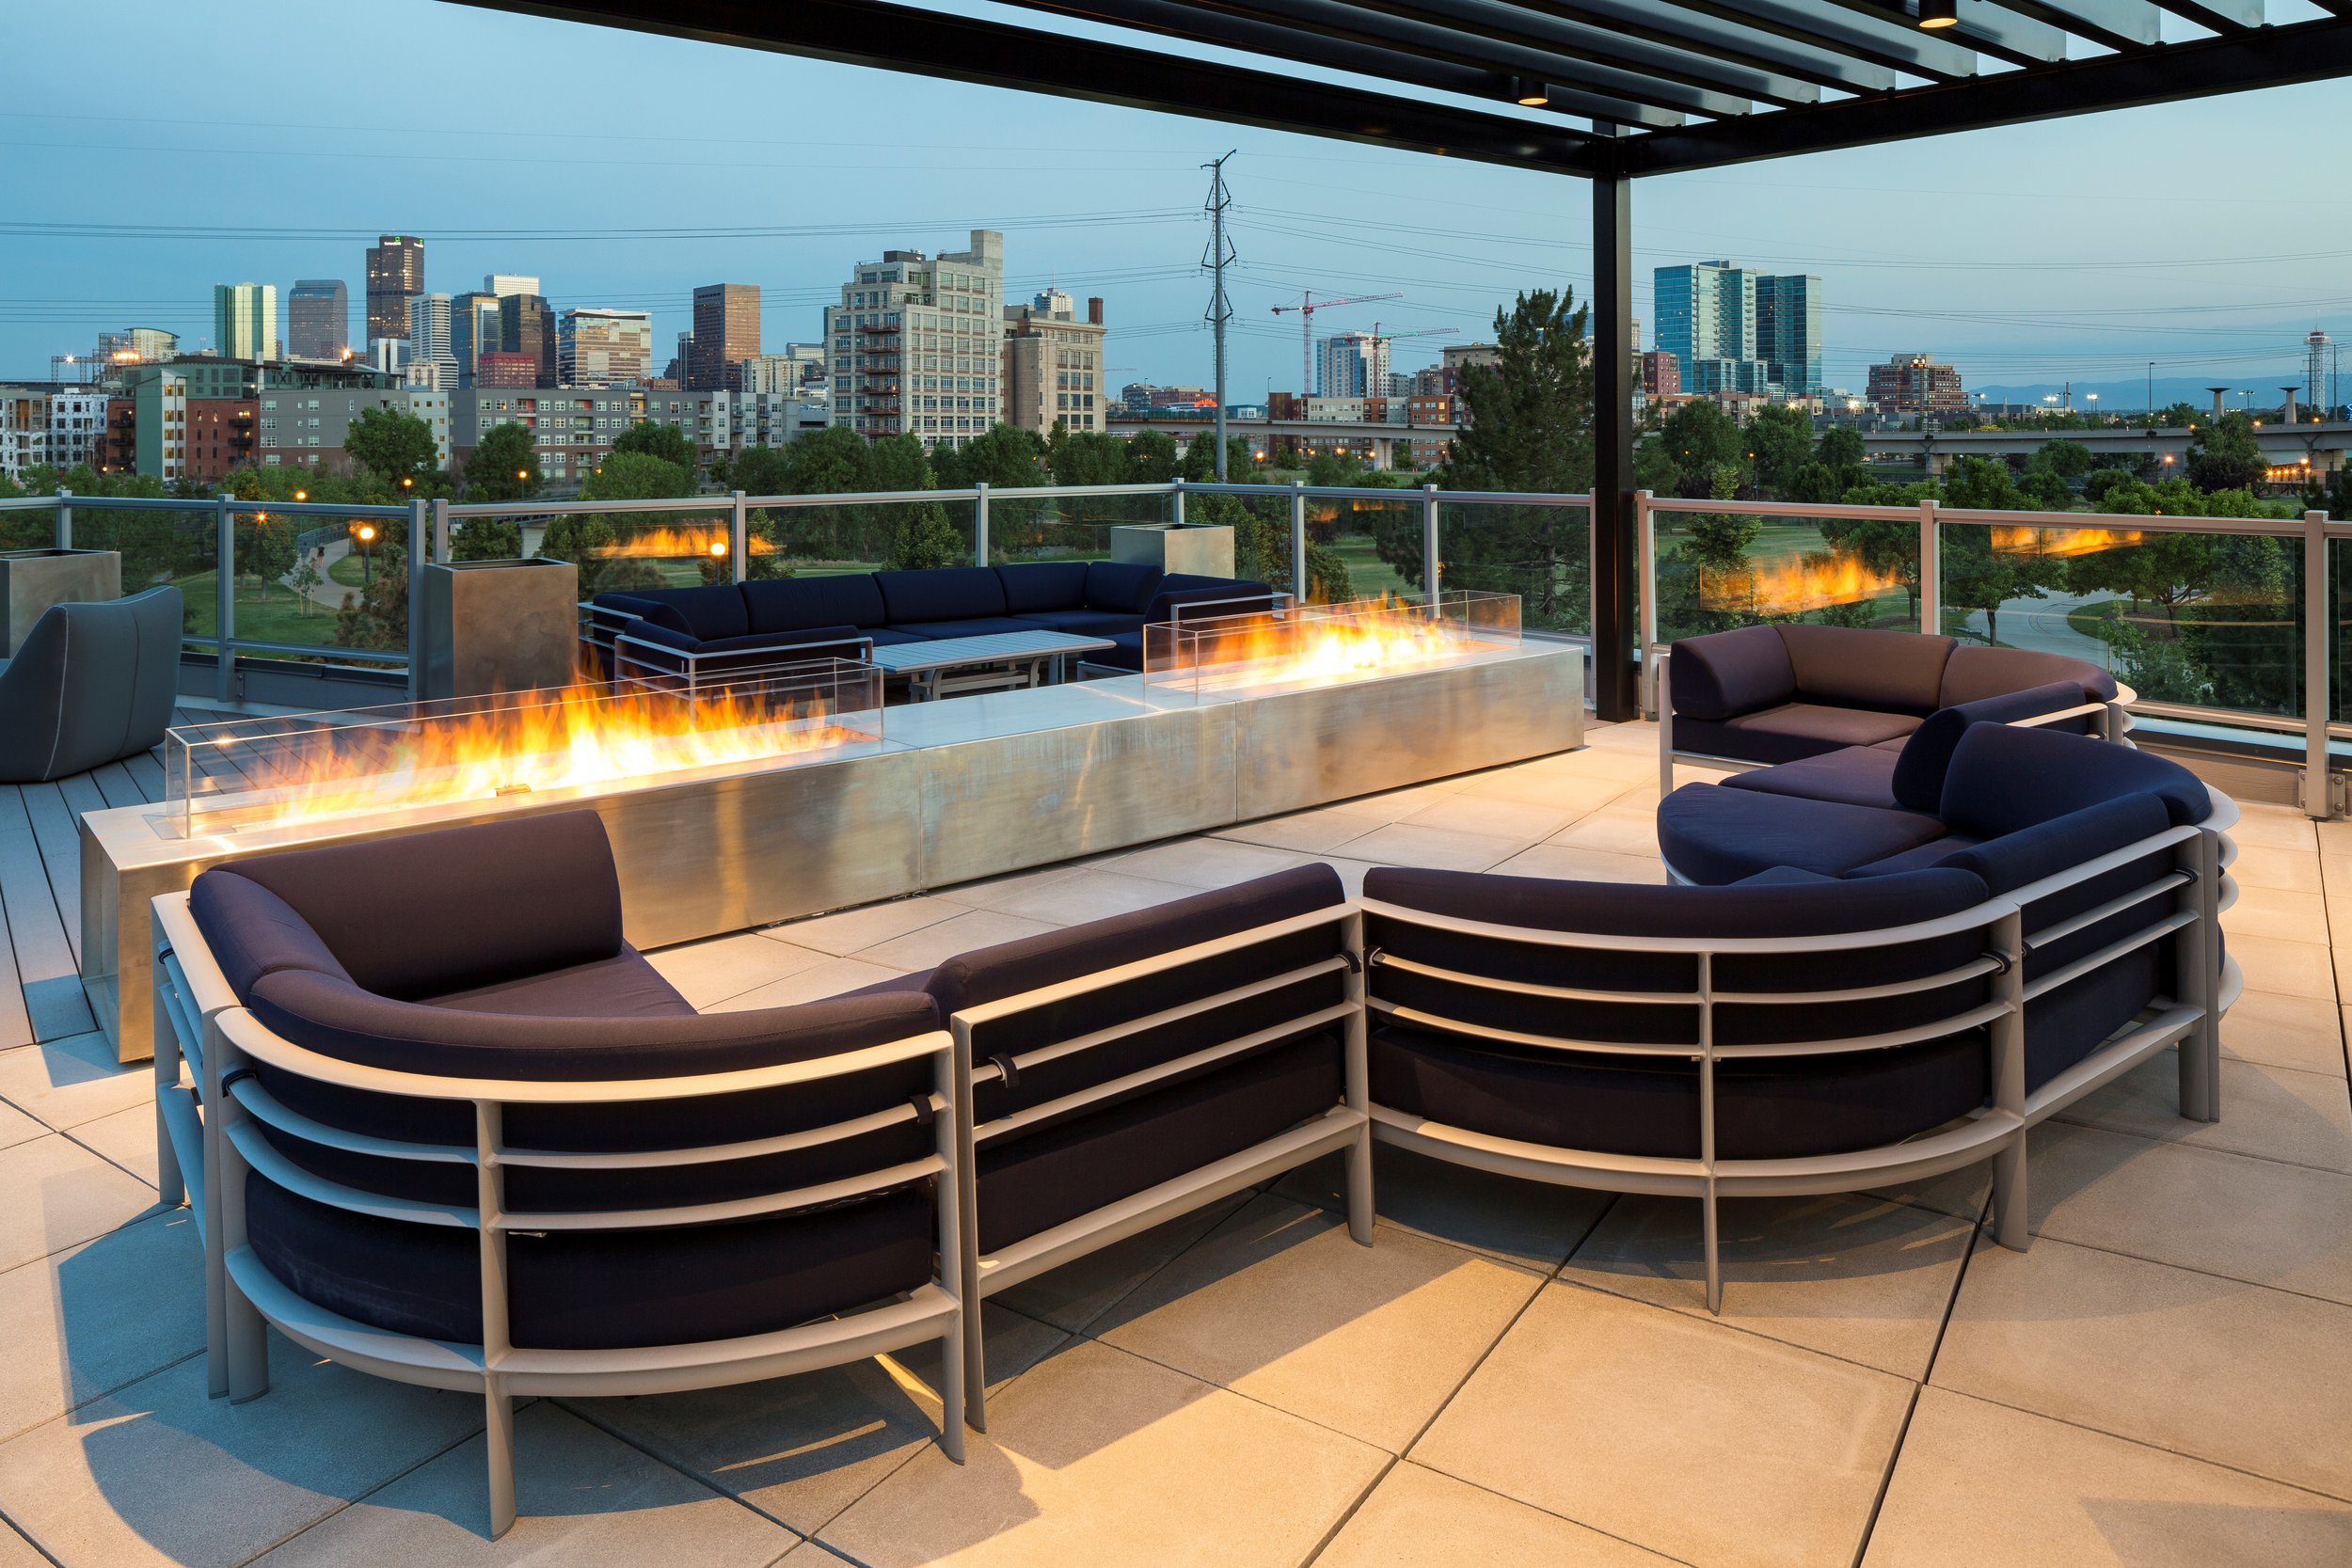 17-The Outdoor Fire takes Away the Evening Chill with Relaxing Skyline Views.jpg